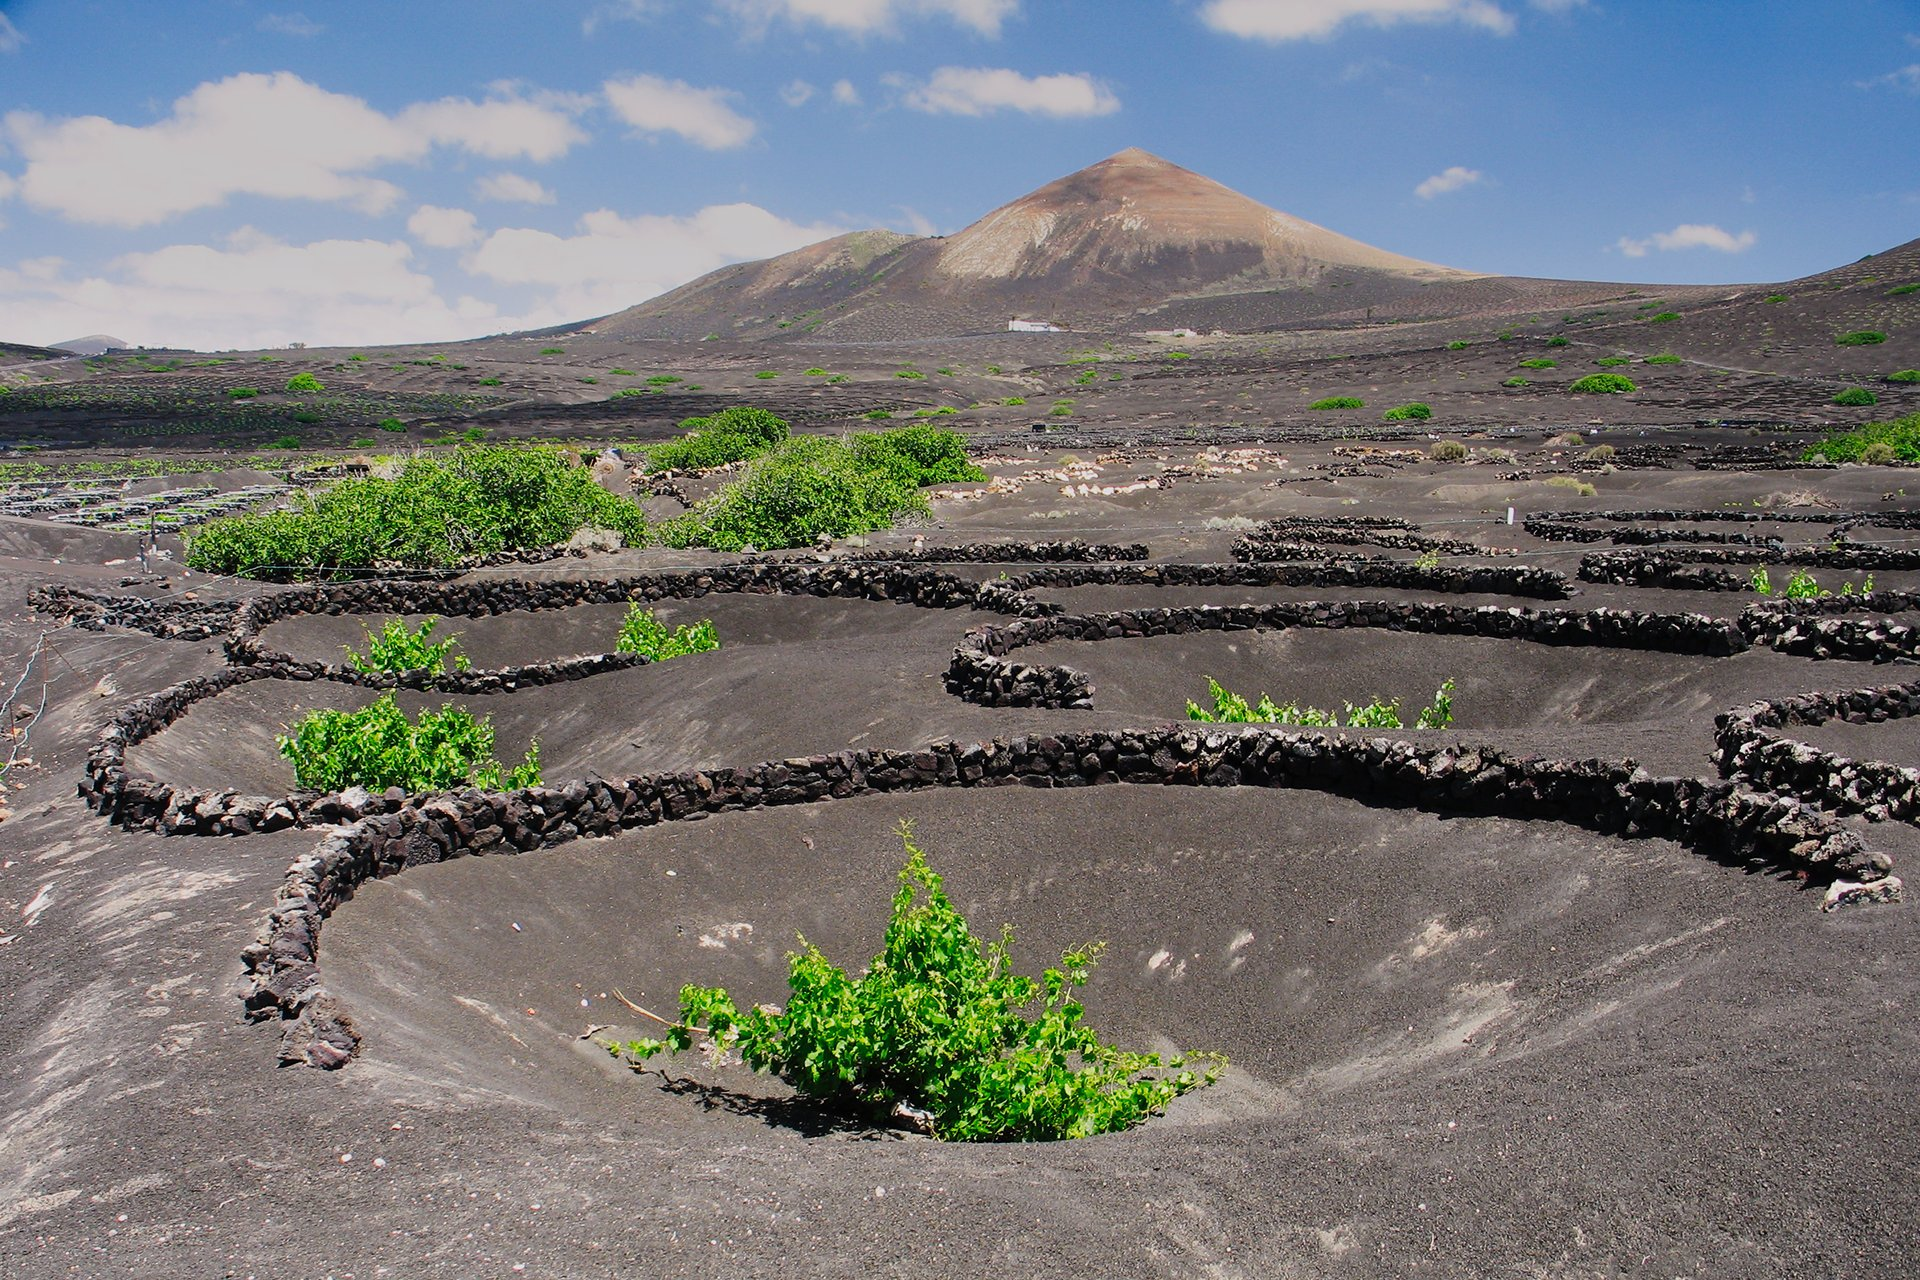 A vine growing inside a pit, protected by a Stone-wall 'Zoco' in La Geria, Lanzarote.